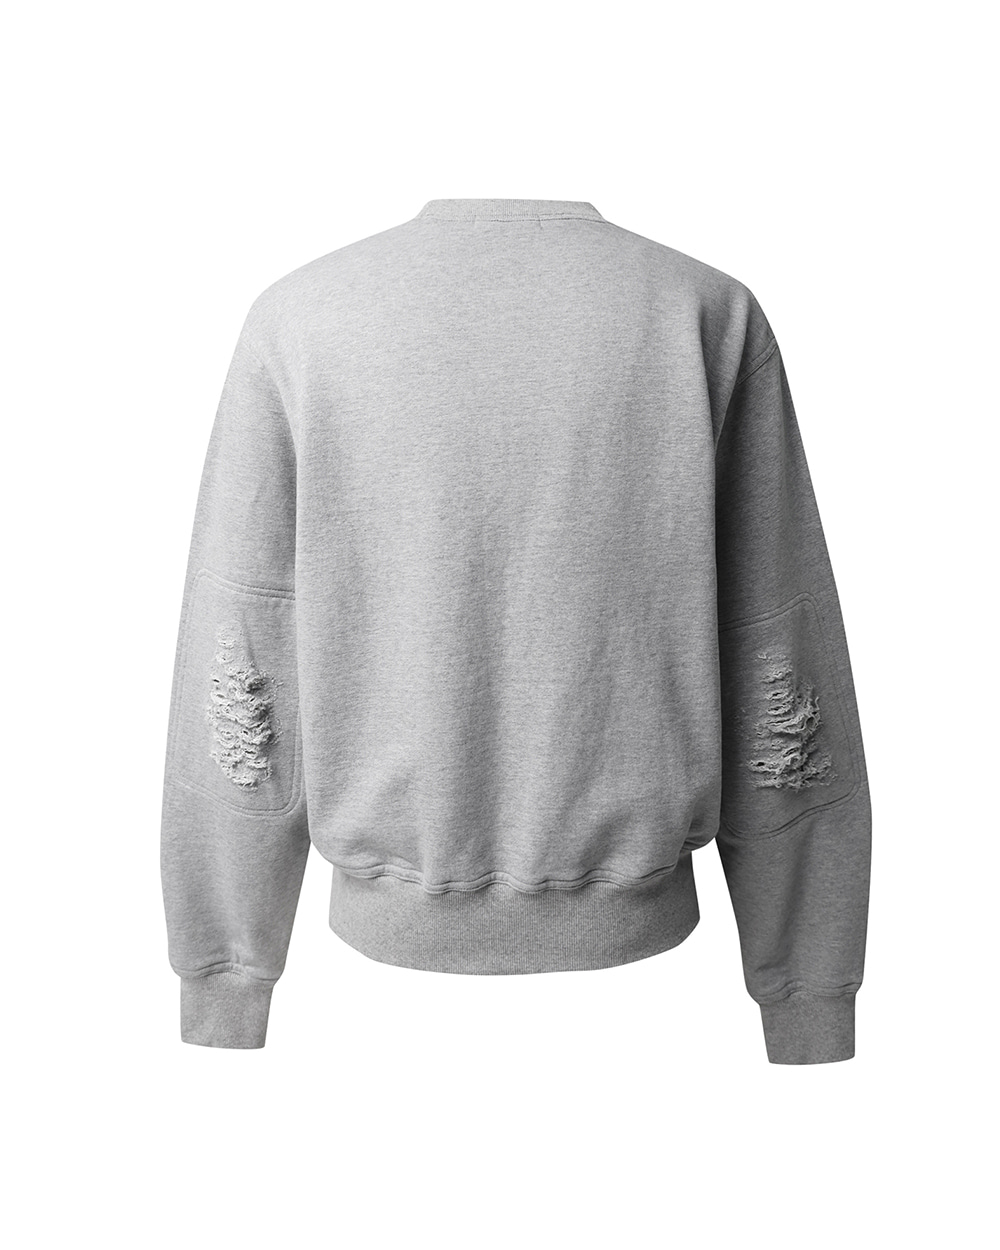 ATE STUDIOS AUTHENTIC SCAR SWEAT SHIRTS (Grey)